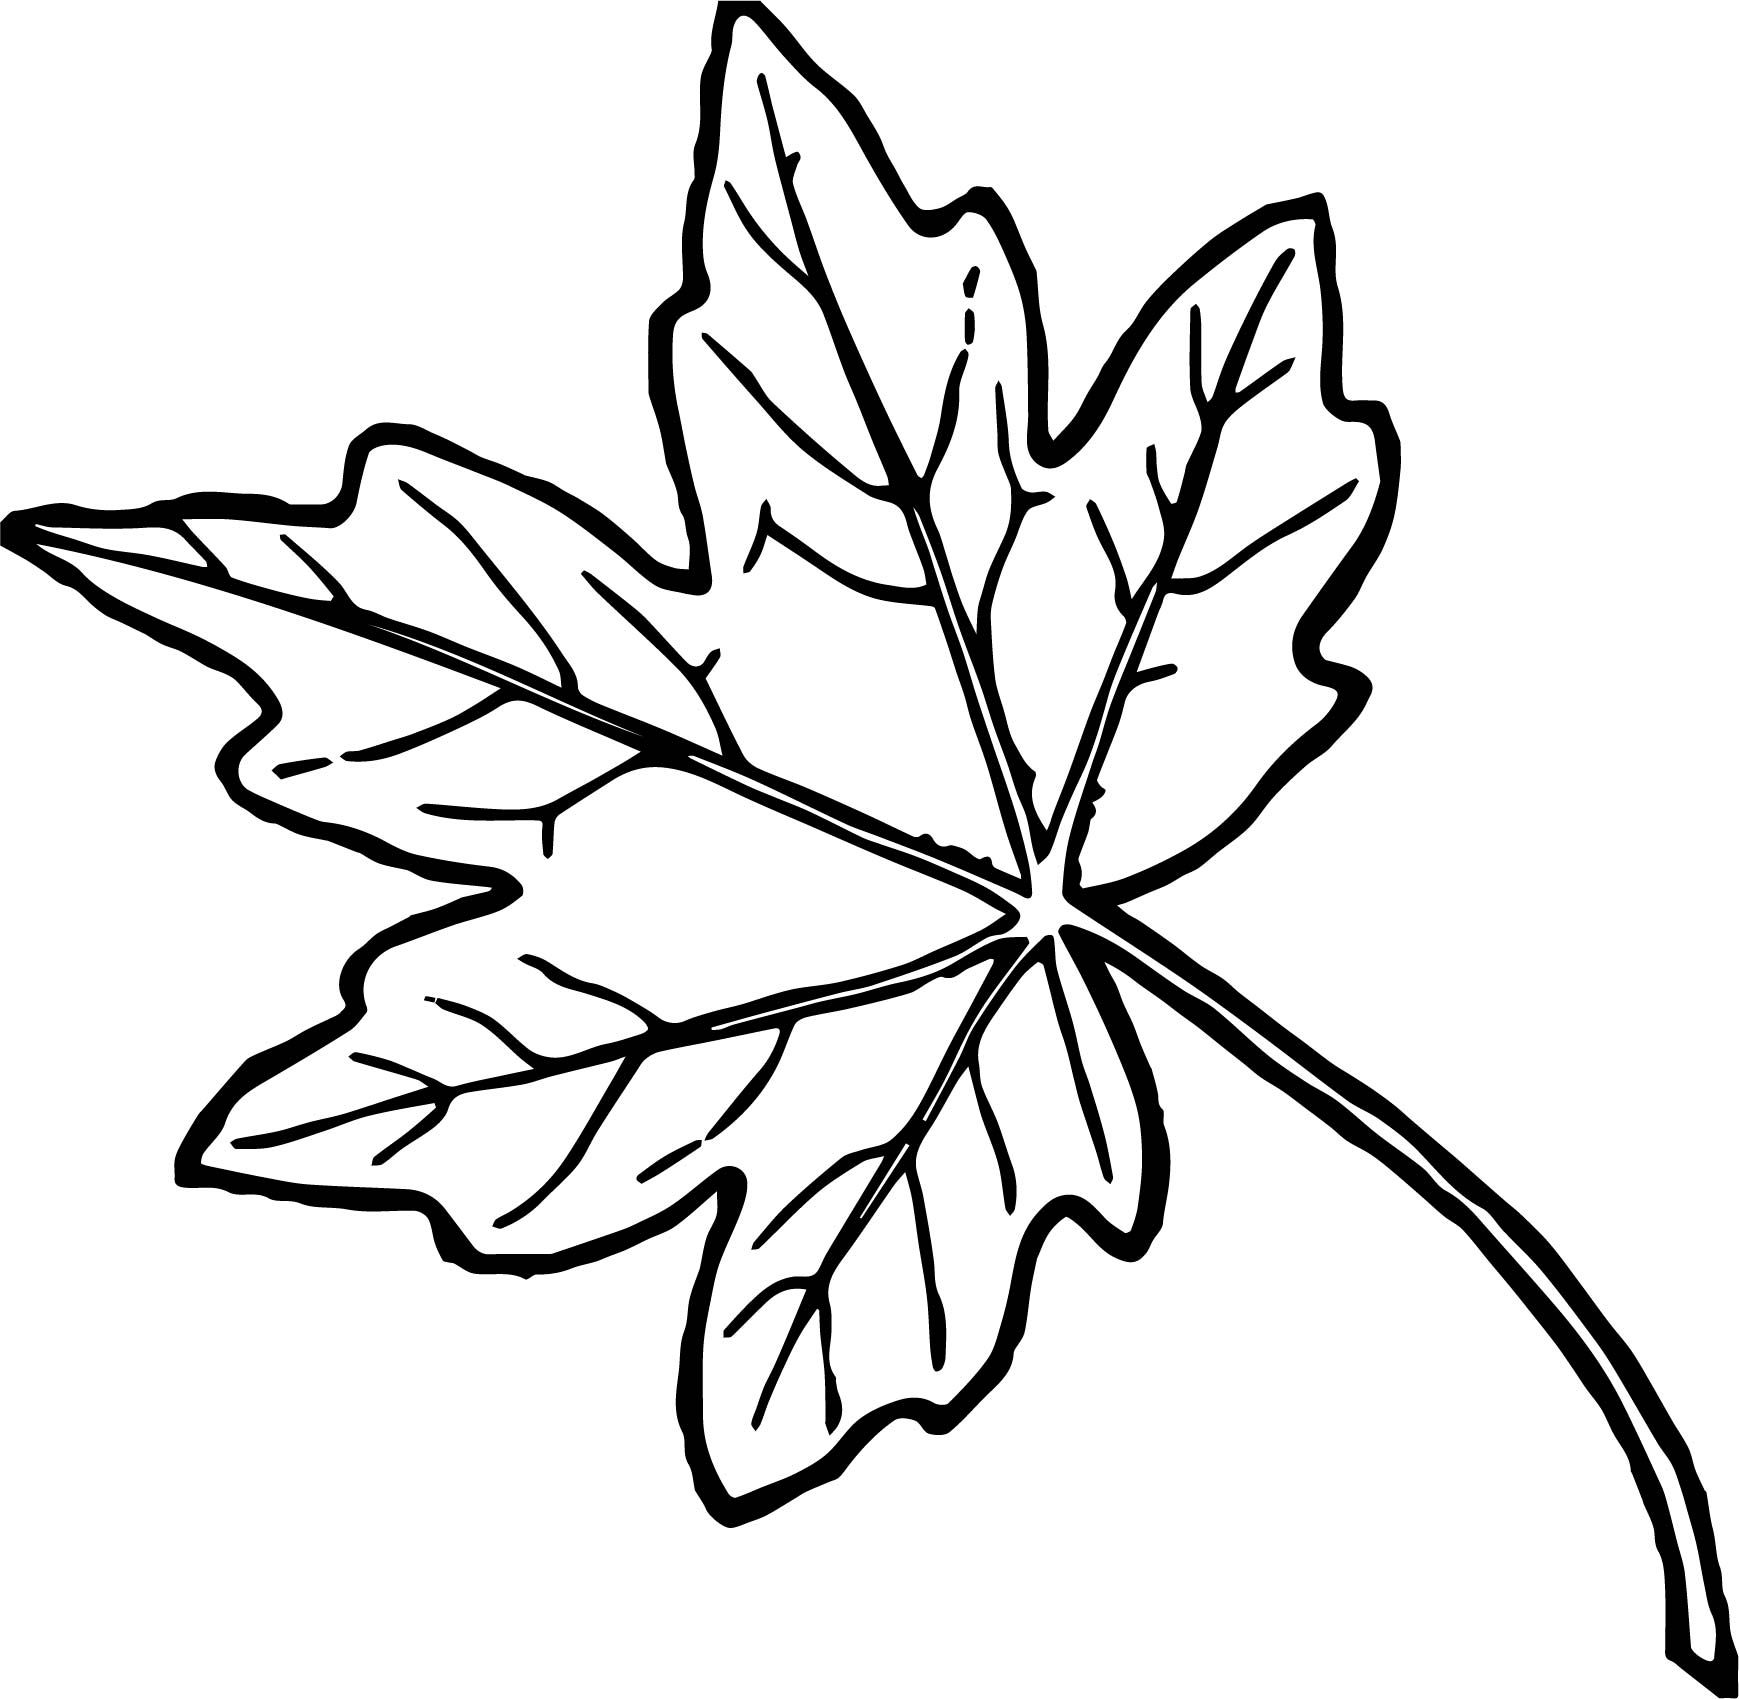 Awesome Just Autumn Leaf Coloring Page With Images